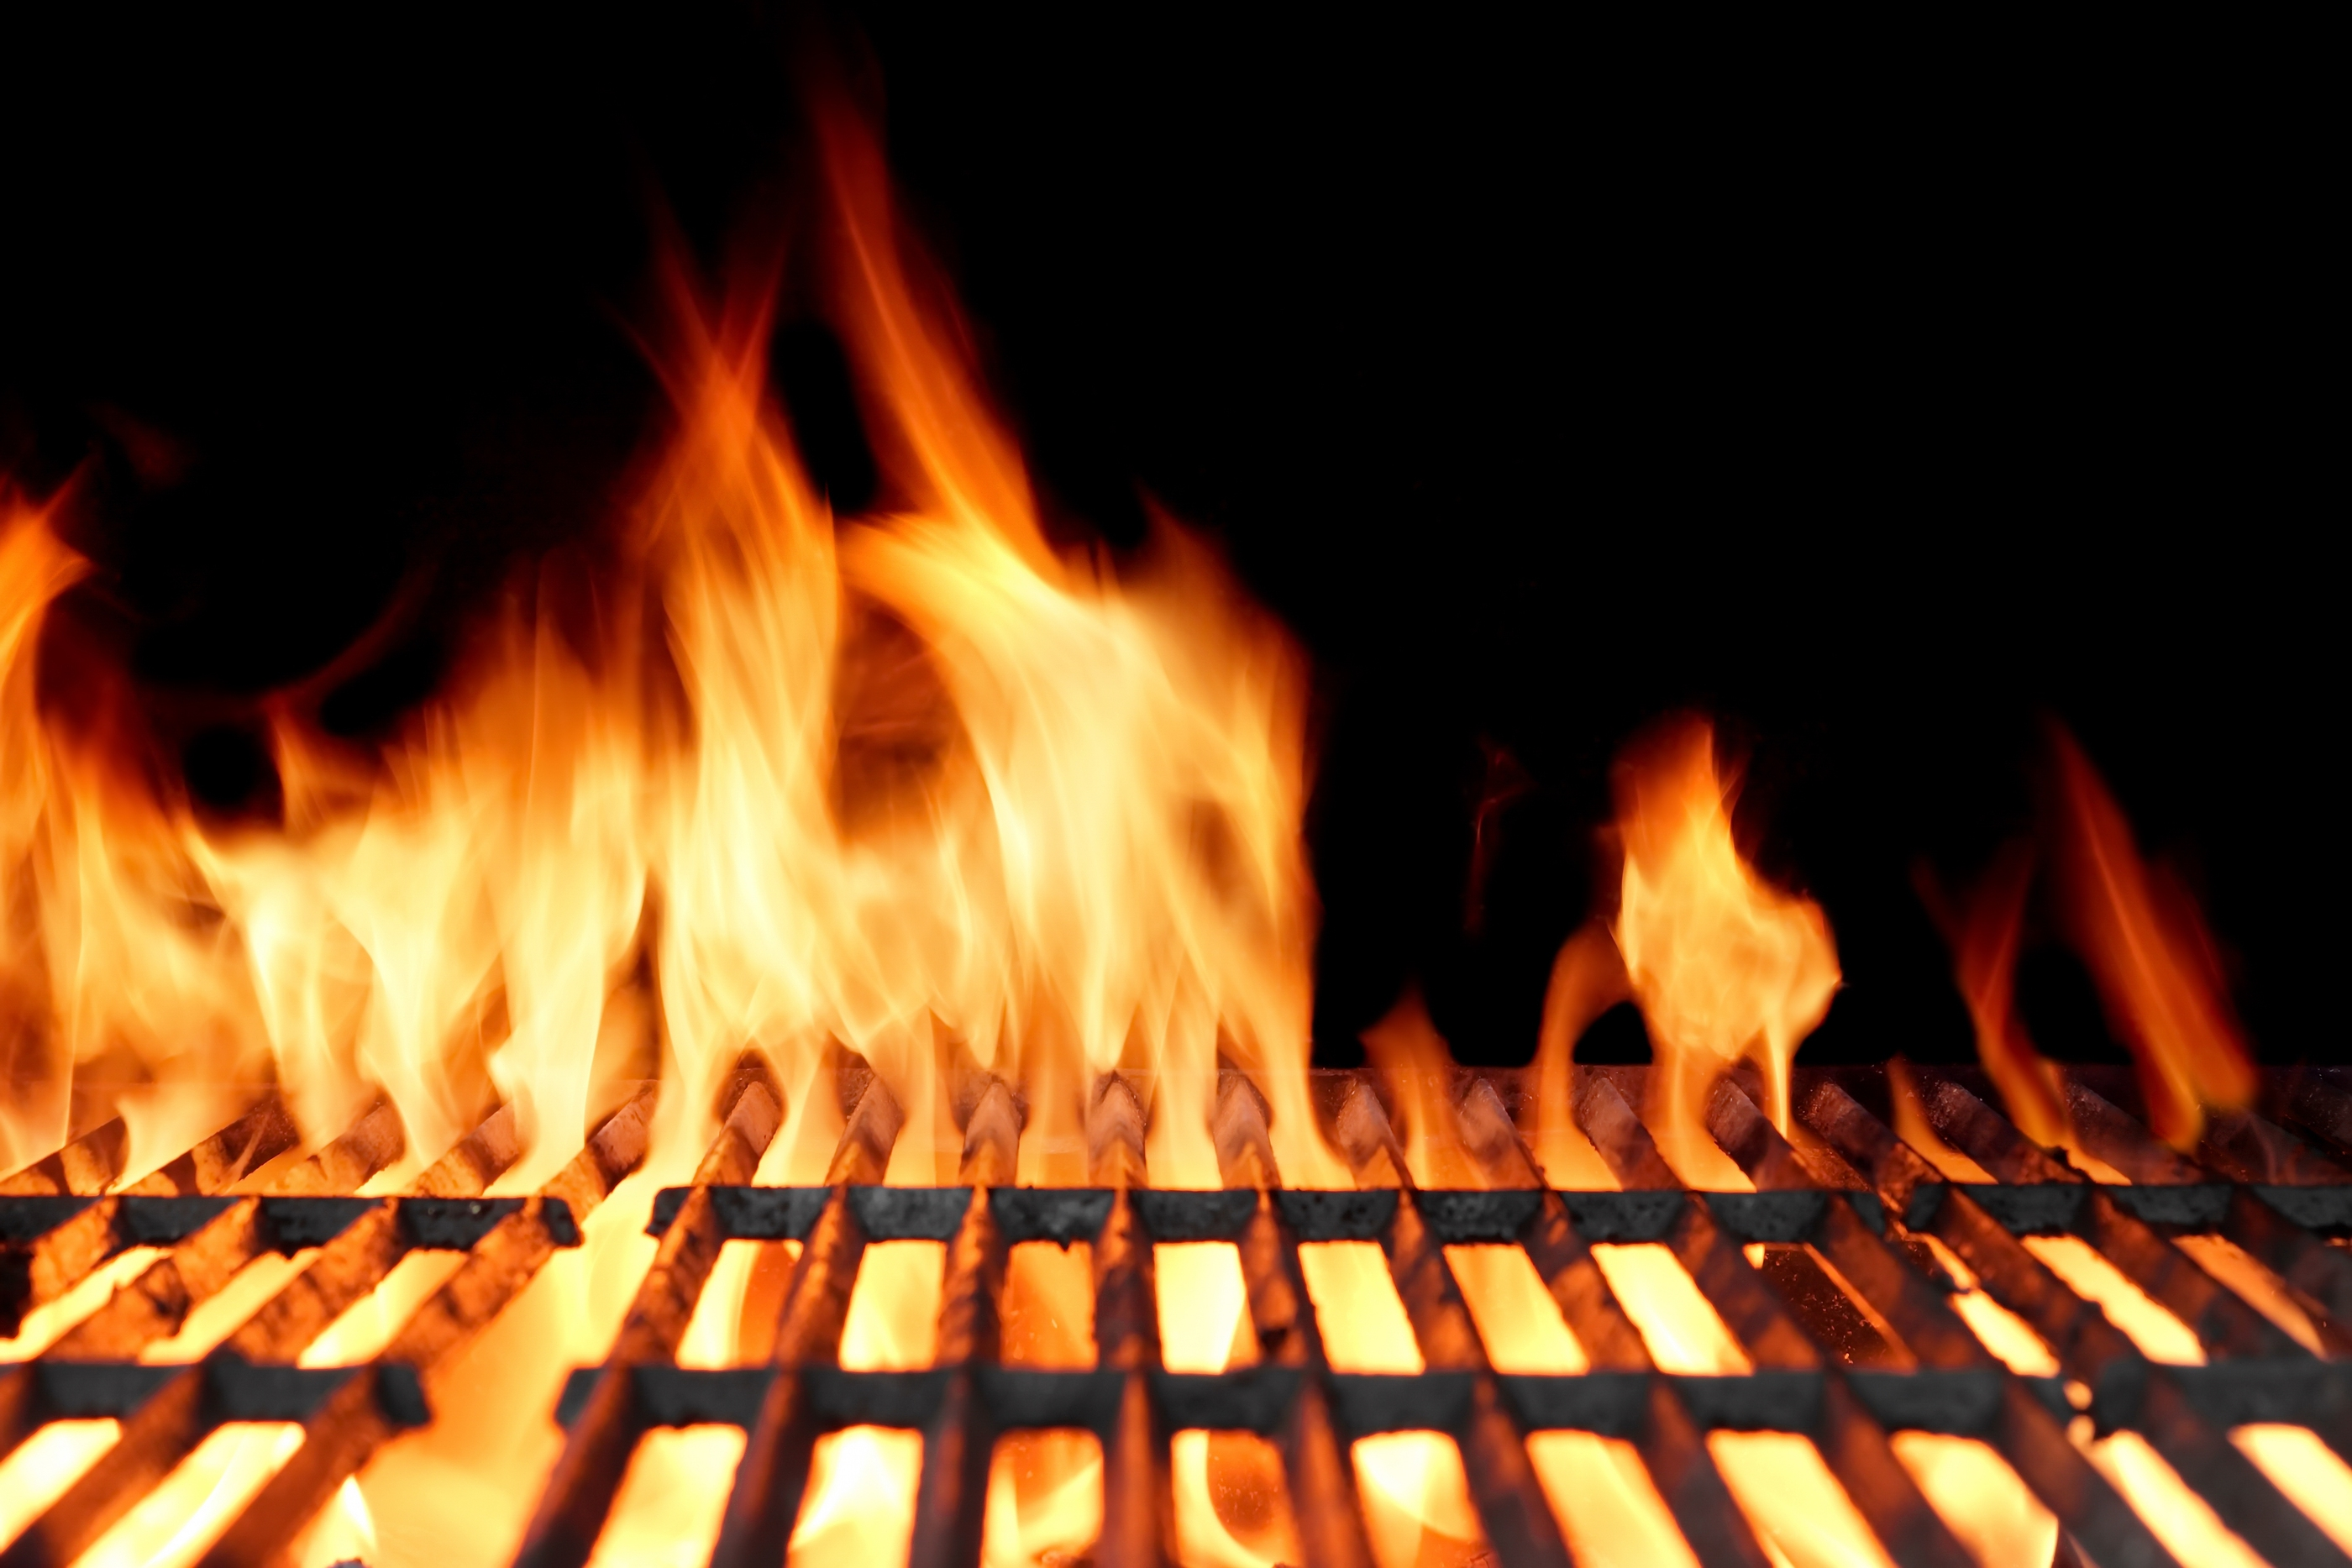 Hot Empty Charcoal Bbq Grill With Bright Flames